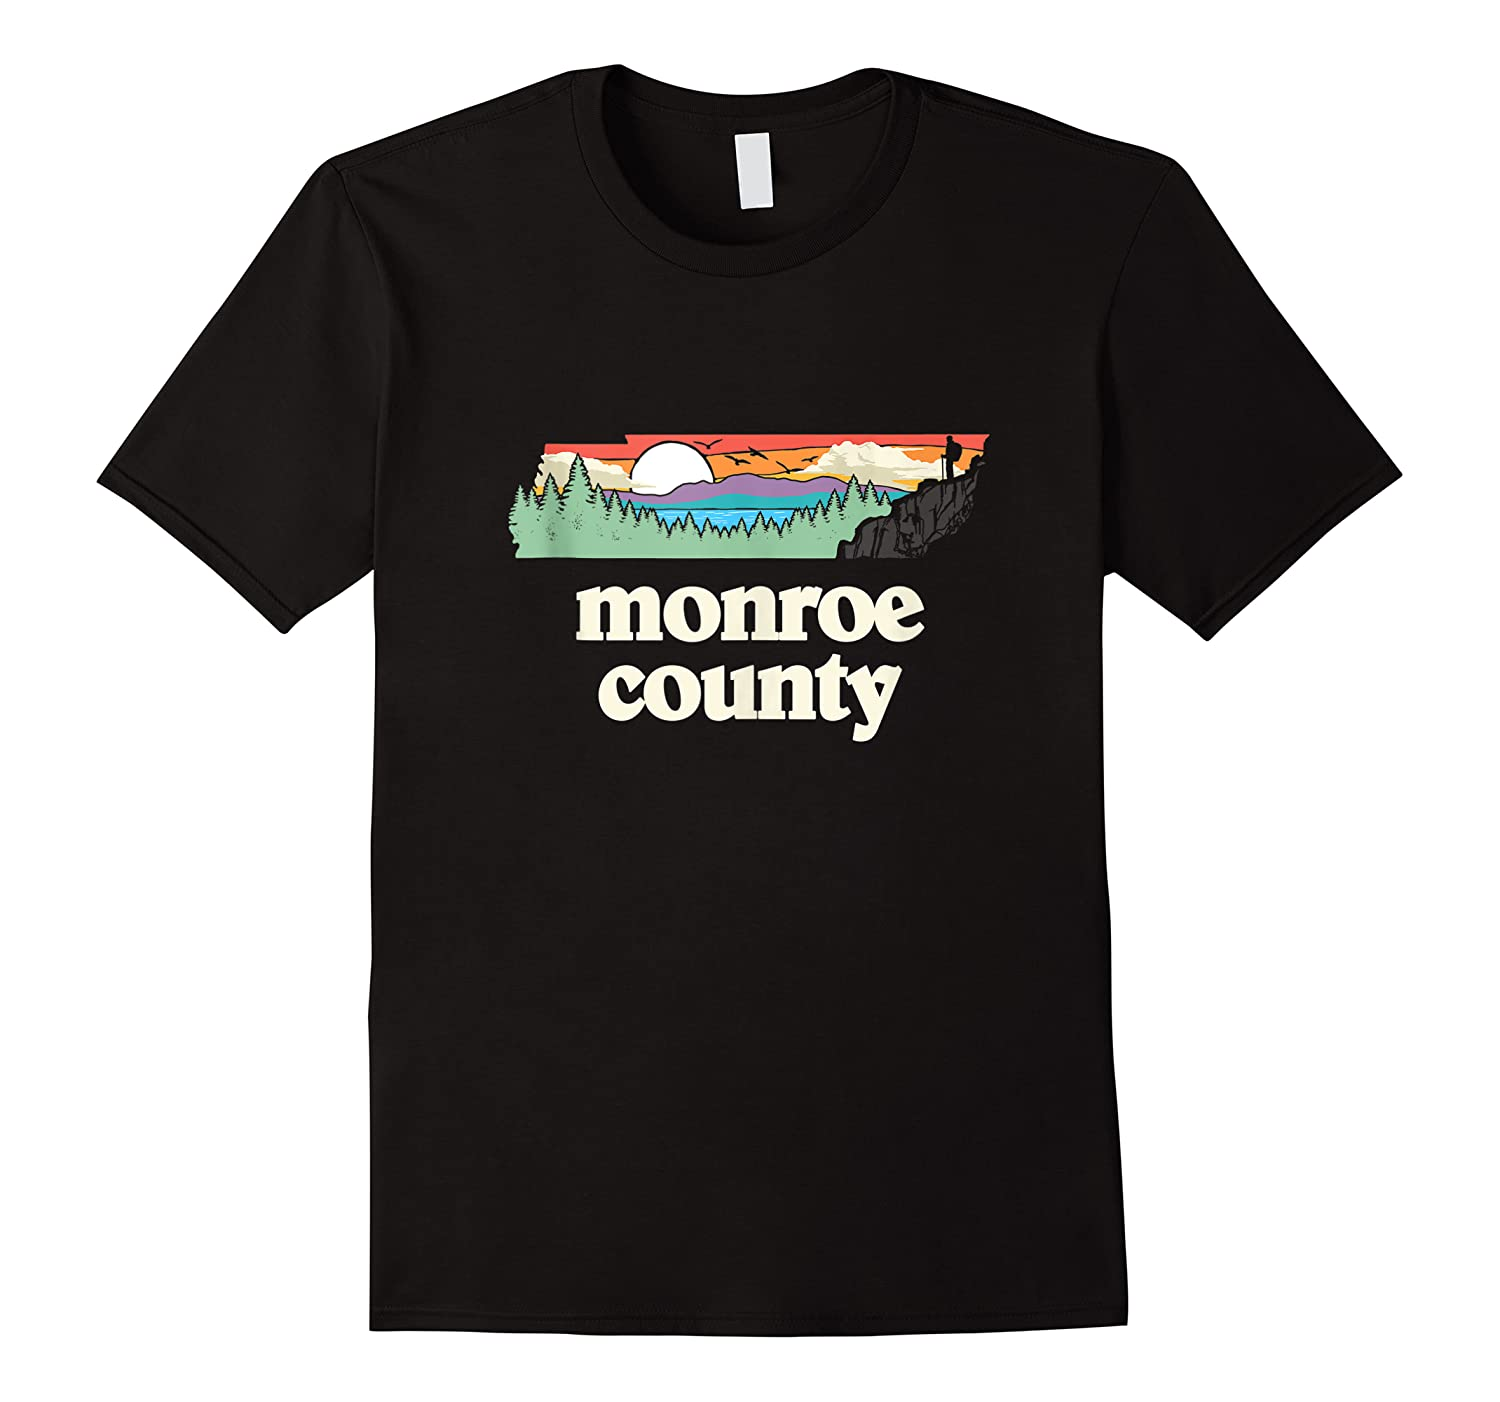 Monroe County Tennessee Outdoors Retro Nature Graphic Tank Top Shirts